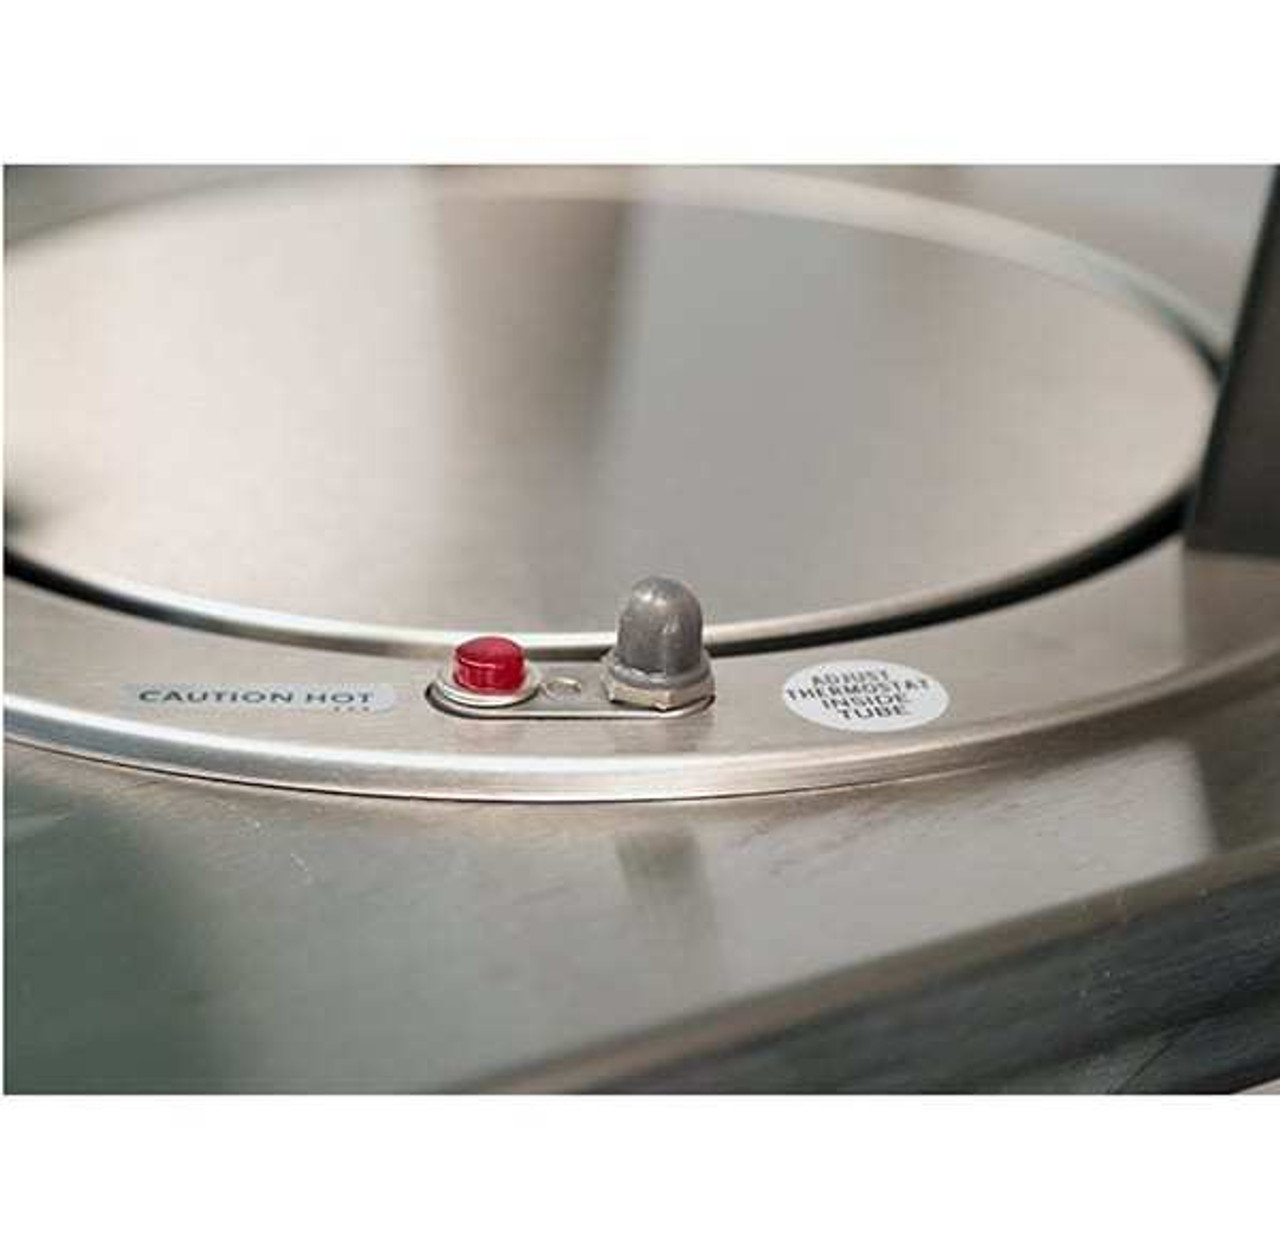 """Dish Dispenser, heated, cabinet style, enclosed base, mobile, (2) self-leveling dish dispensing tubes, 7-3/8"""" to 8-1/8"""" diameter dish size, stainless steel construction, 4"""" Lake-Glide® swivel casters (2) with brakes, 6' coiled cord with NEMA 5-15P, NSF, UL, Made in USA"""